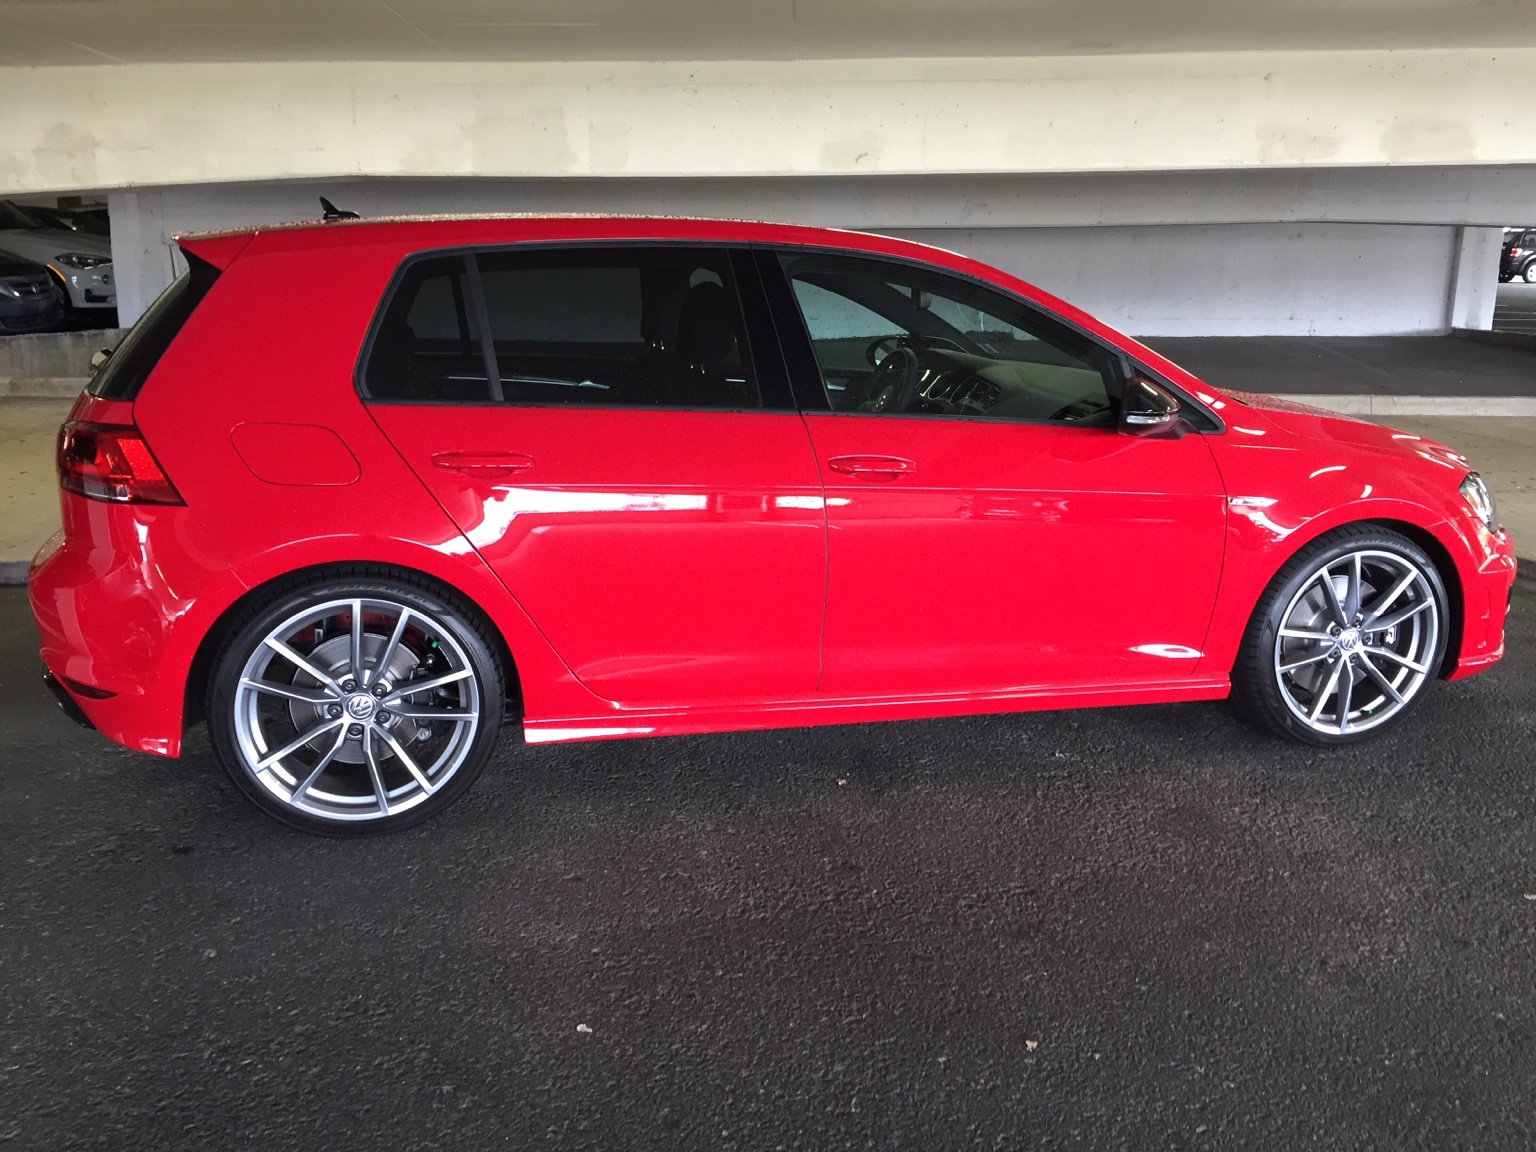 2017 tornado red golf r boston vw available now. Black Bedroom Furniture Sets. Home Design Ideas